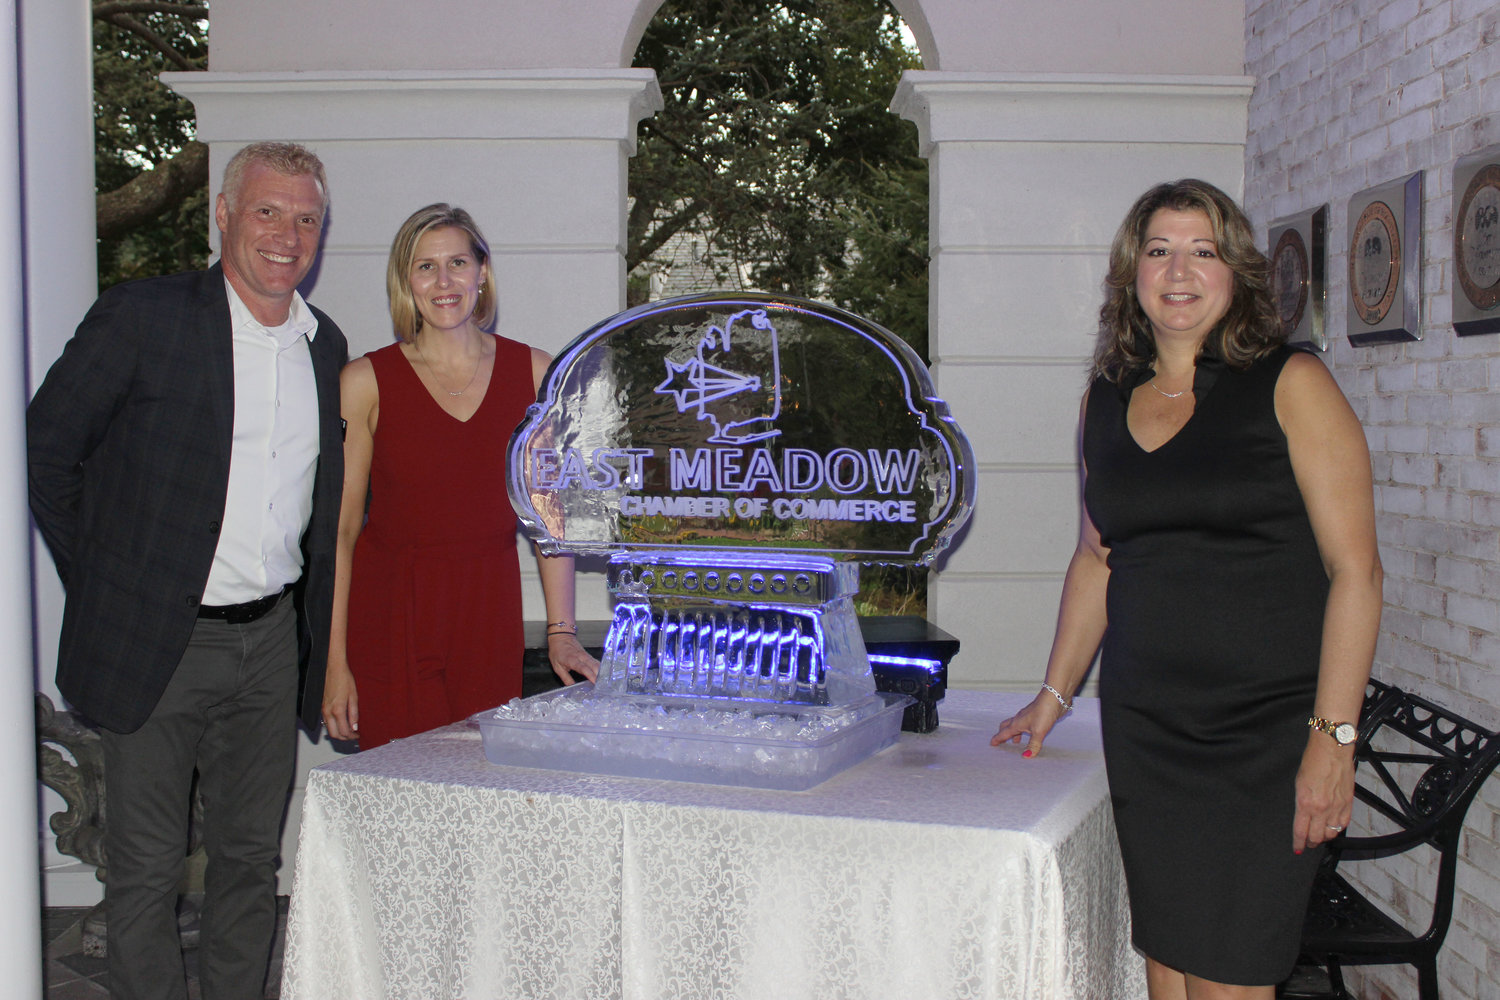 For the fifth year, Lyndsey Gallagher, second from left, and Rosemary Basmajian co-chaired the largest fundraiser for the East Meadow Chamber of Commerce. Michael Levy, the chamber's president, helped them welcome guests to Culinary Delights at the Carltun in East Meadow's Eisenhower Park.